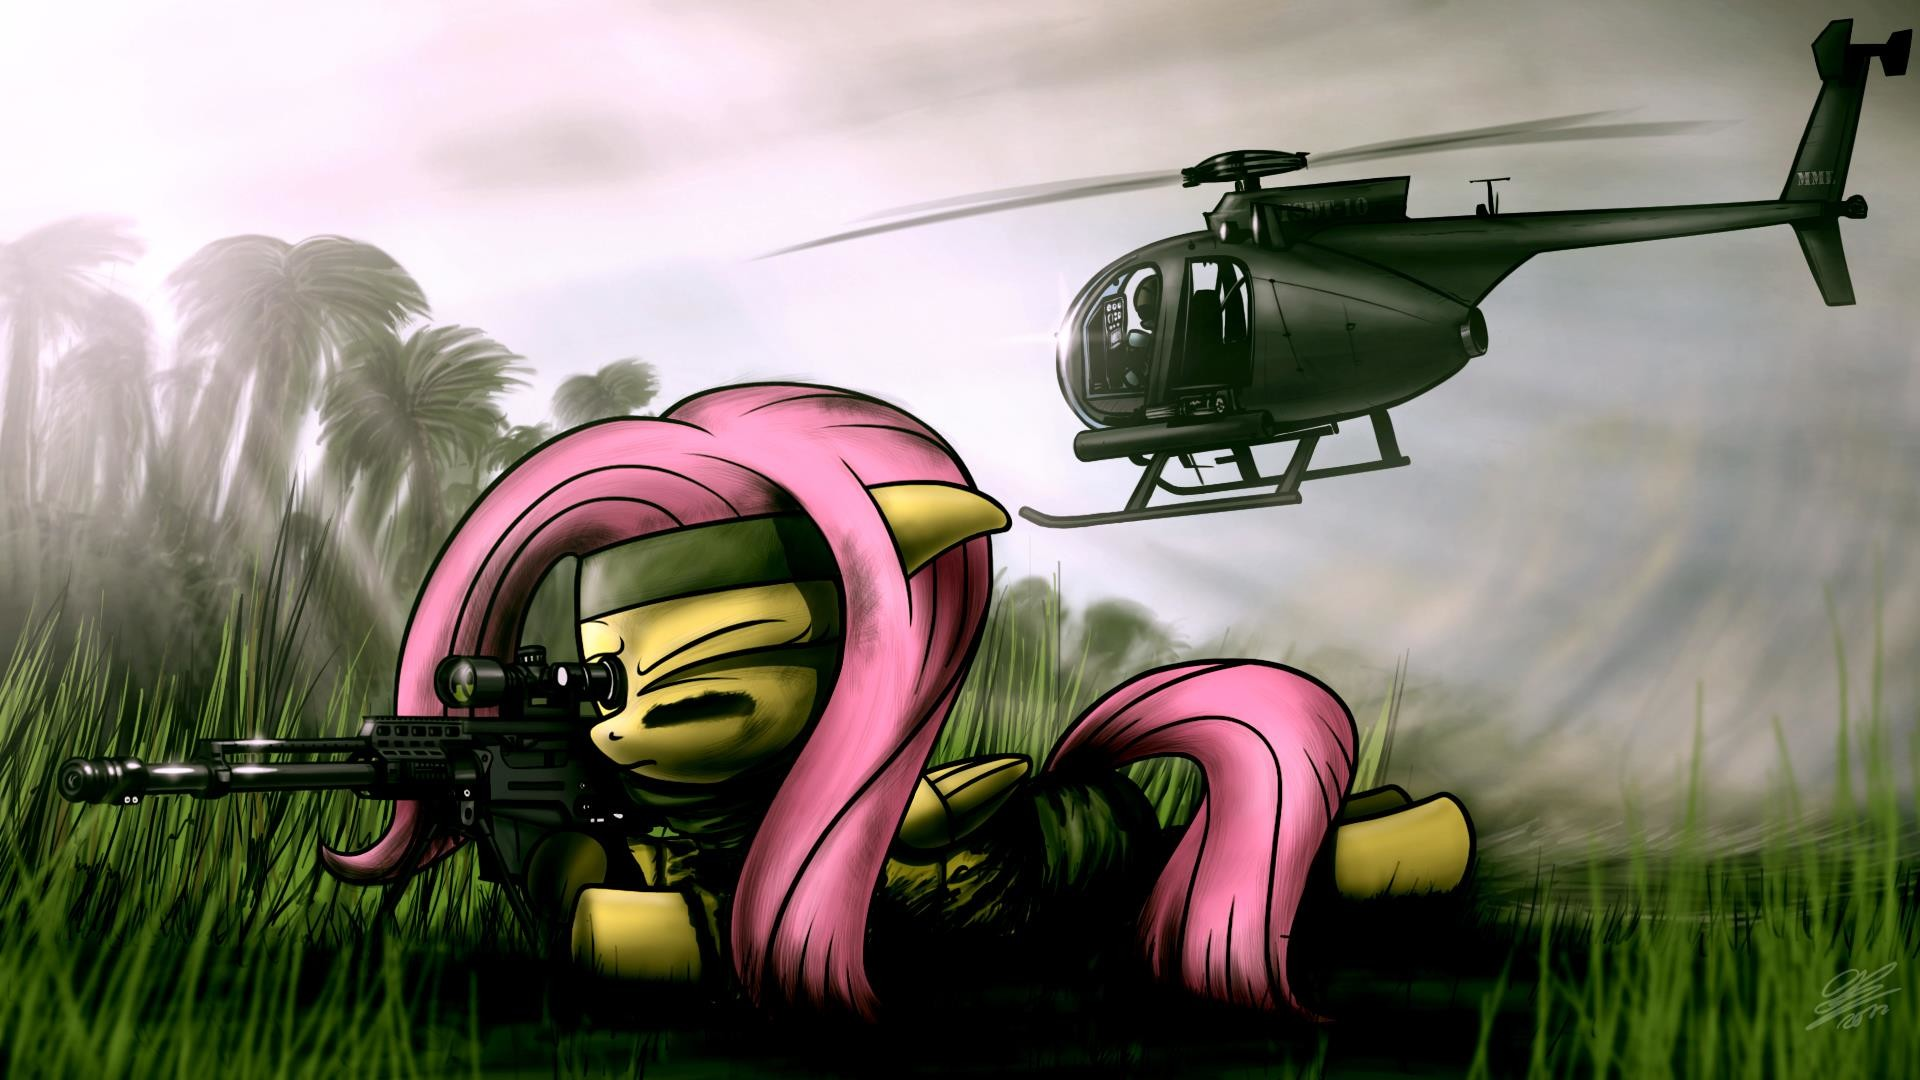 Helicopter My Little Pony Wallpapers.